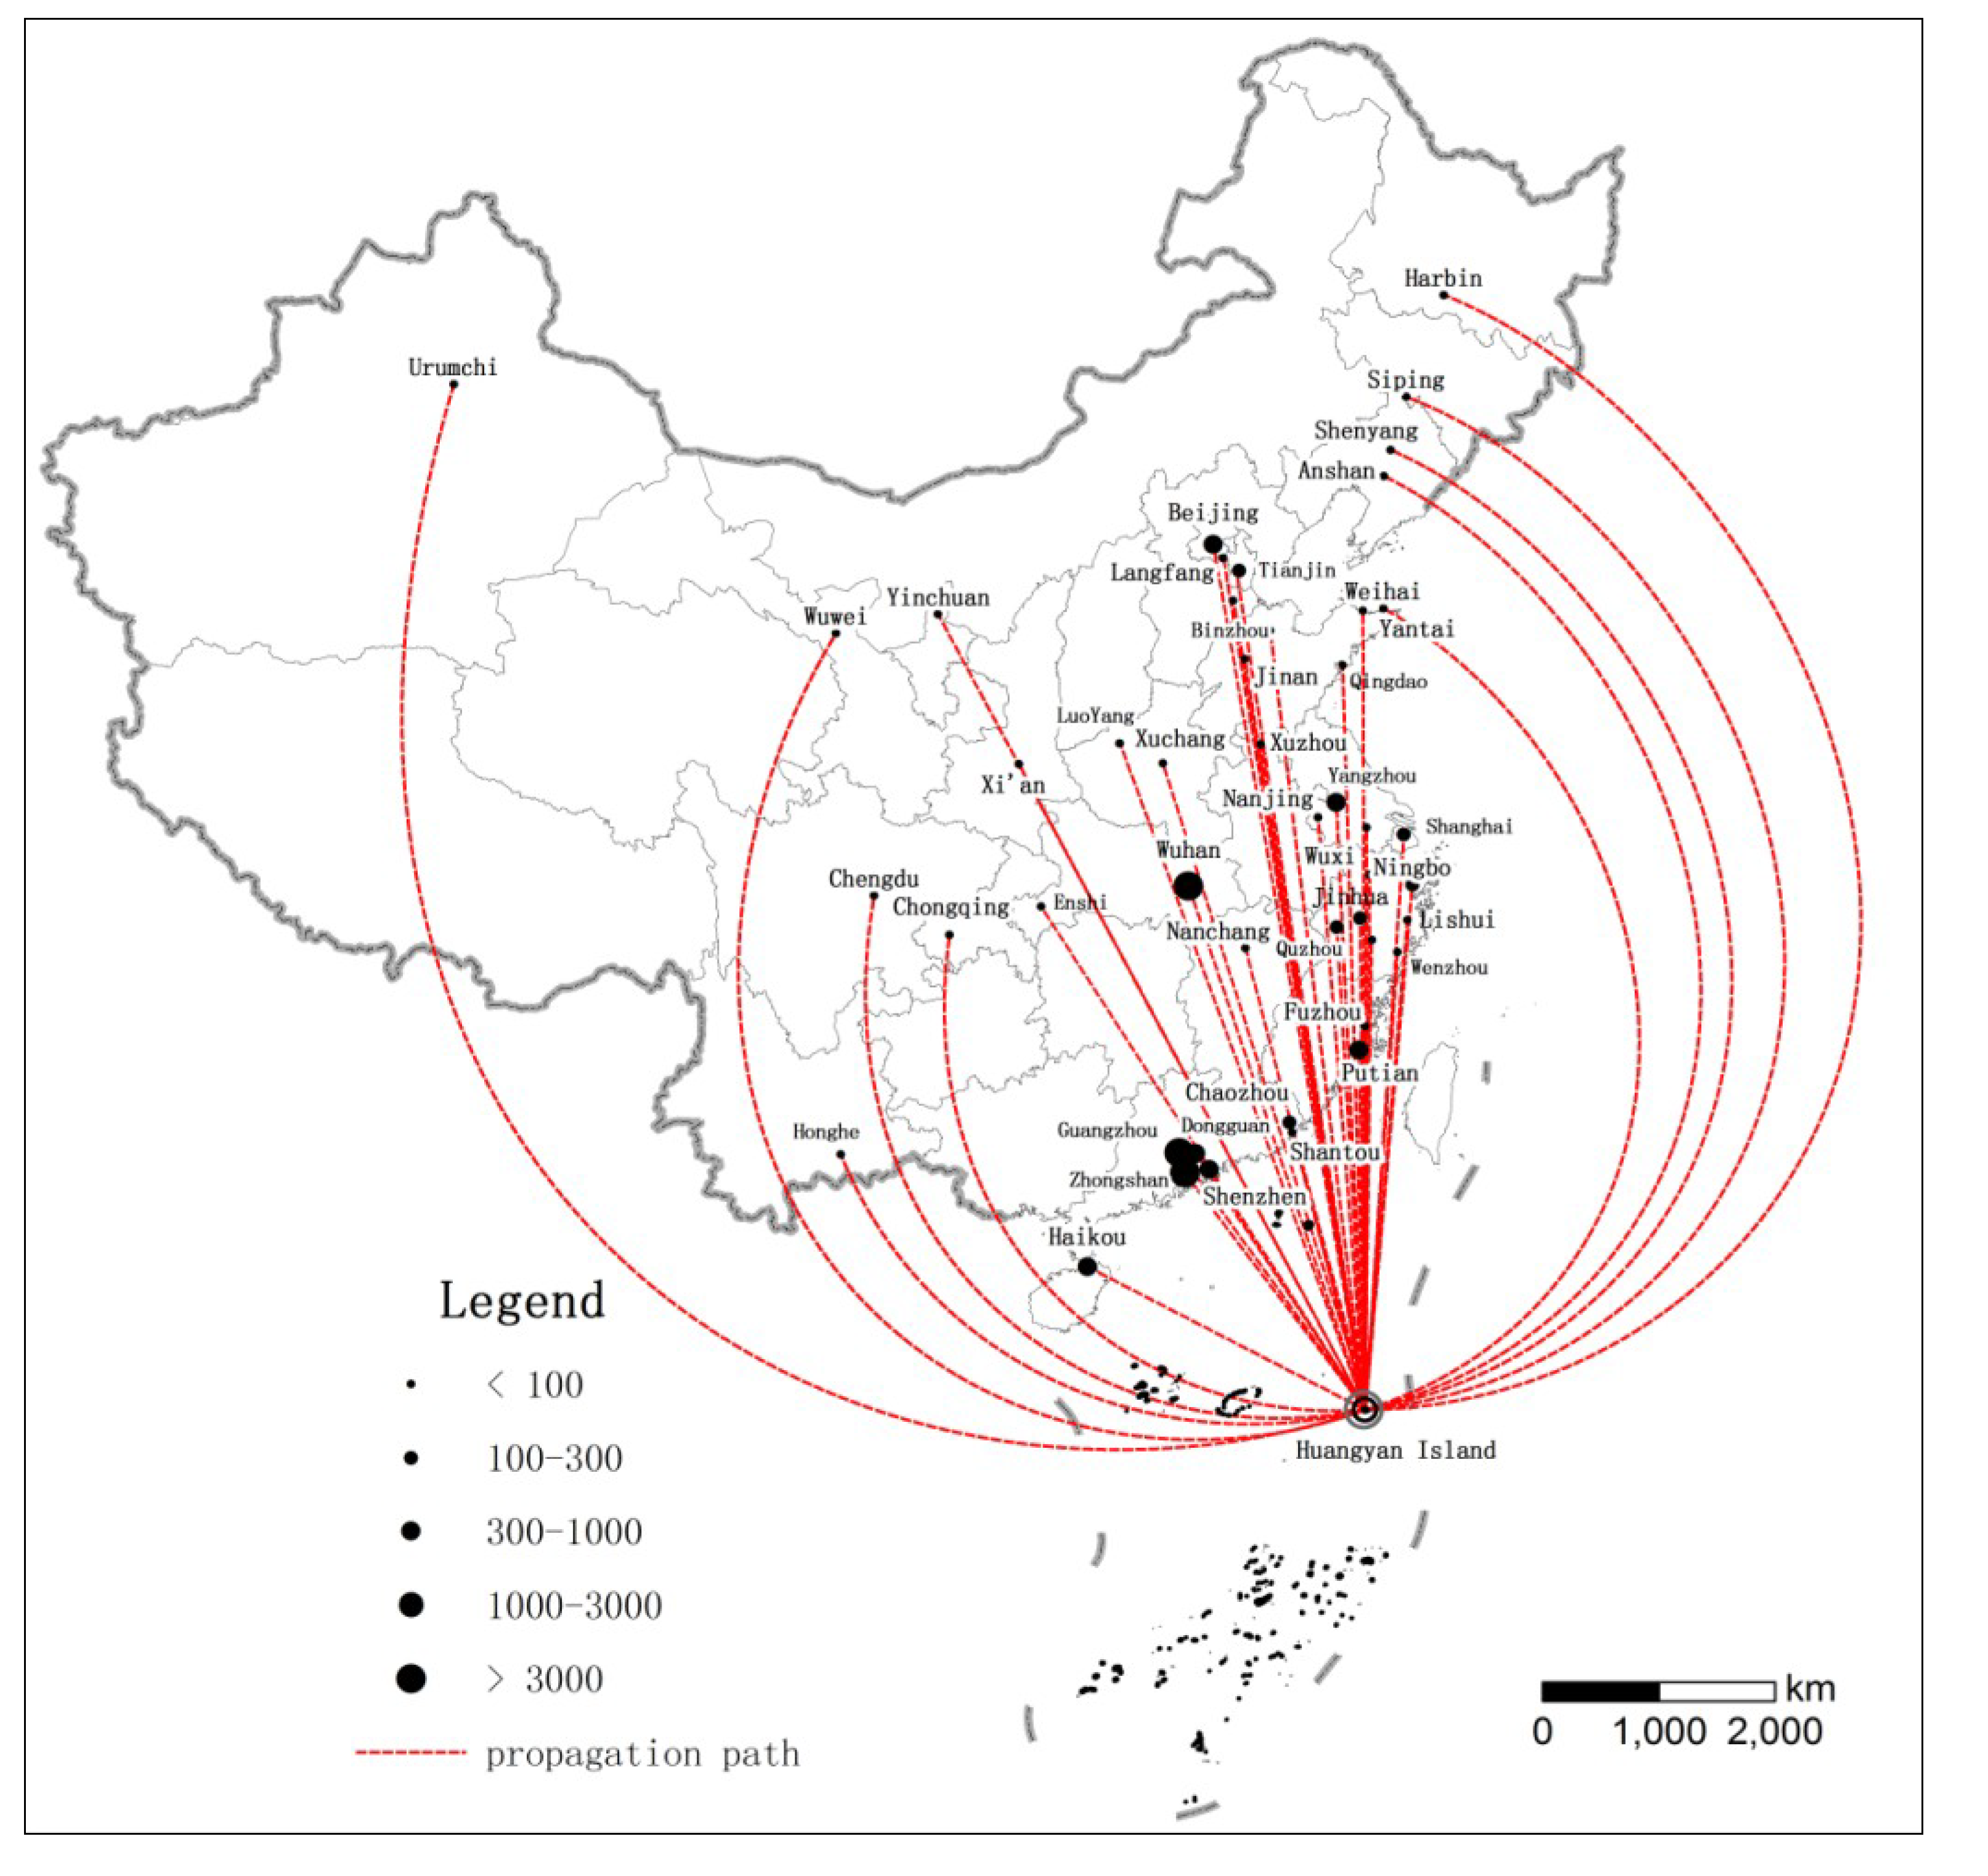 Sustainability Free FullText Using Web Crawler Technology For - Huangyan map